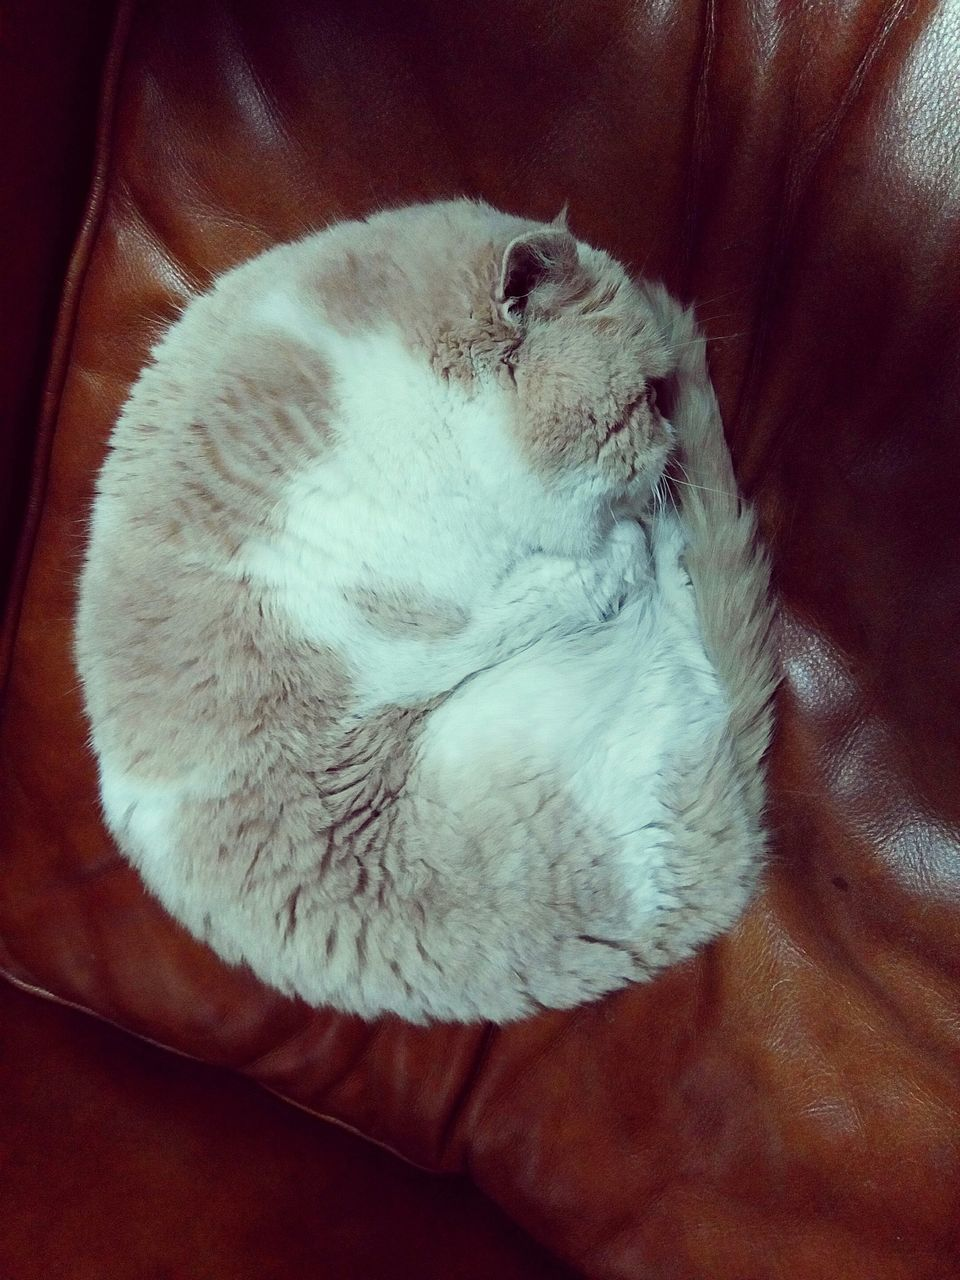 mammal, pets, domestic, domestic animals, animal, one animal, animal themes, relaxation, cat, domestic cat, sleeping, indoors, feline, vertebrate, resting, high angle view, no people, lying down, eyes closed, comfortable, whisker, napping